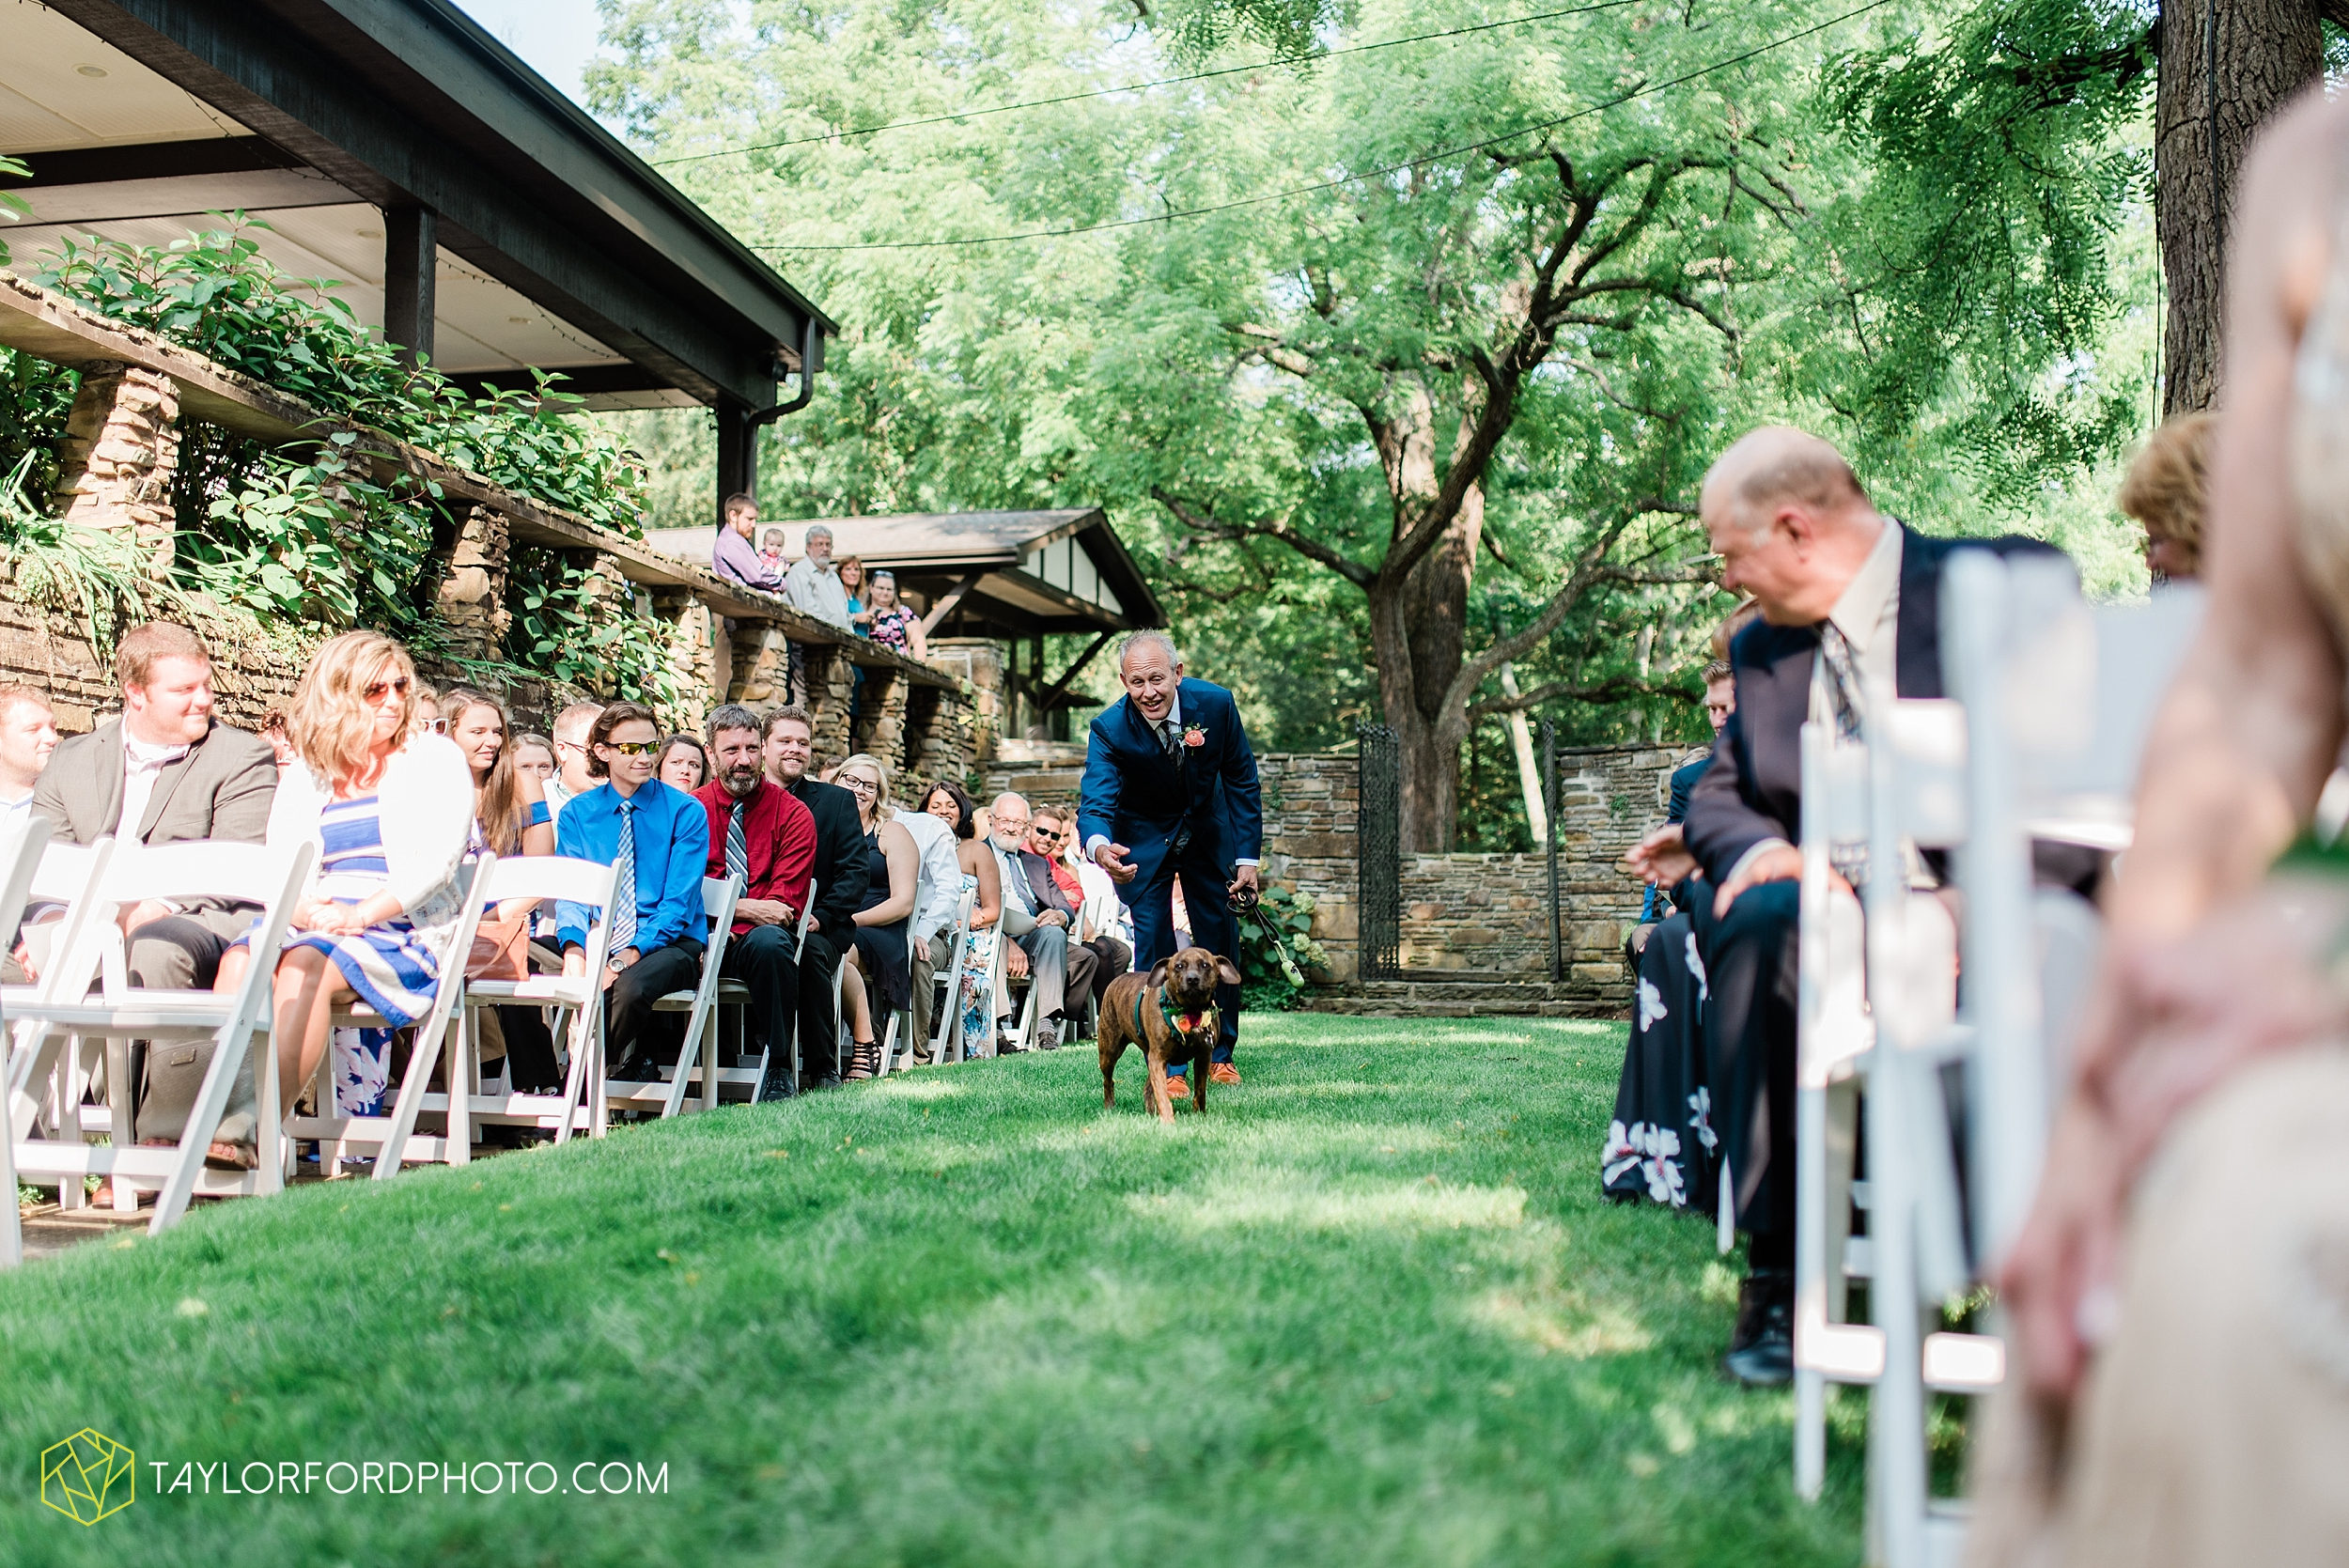 margot-may-evan-kohler-club-at-hillbrook-cleveland-chagrin-falls-outdoor-wedding-bhldn-gardenview-flowers-toledo-photographer-taylor-ford-photographer_9573.jpg